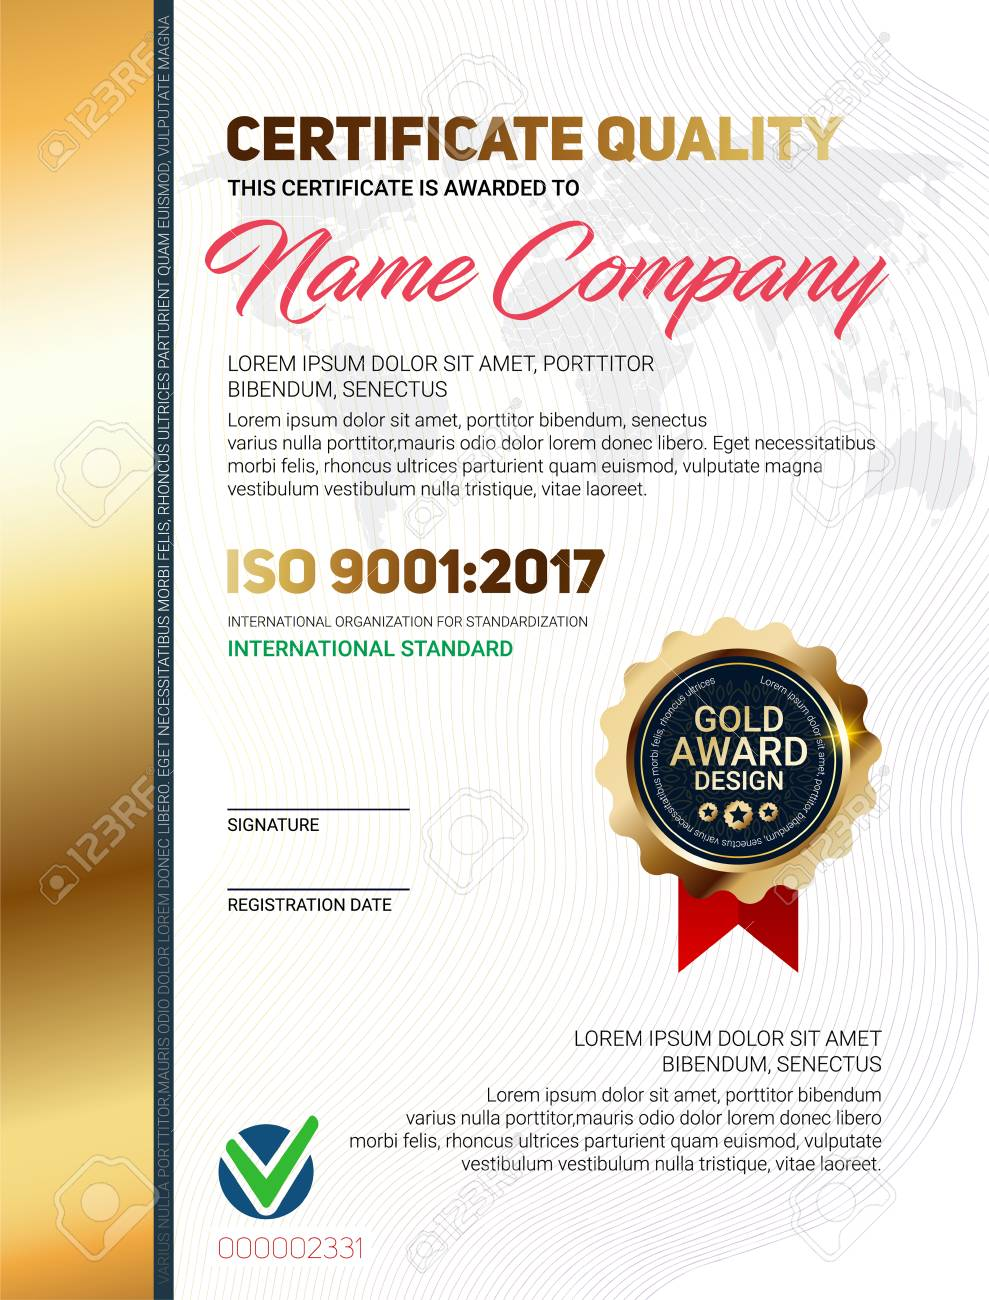 Certificate quality template royalty free cliparts vectors and certificate quality template stock vector 90880000 yelopaper Gallery